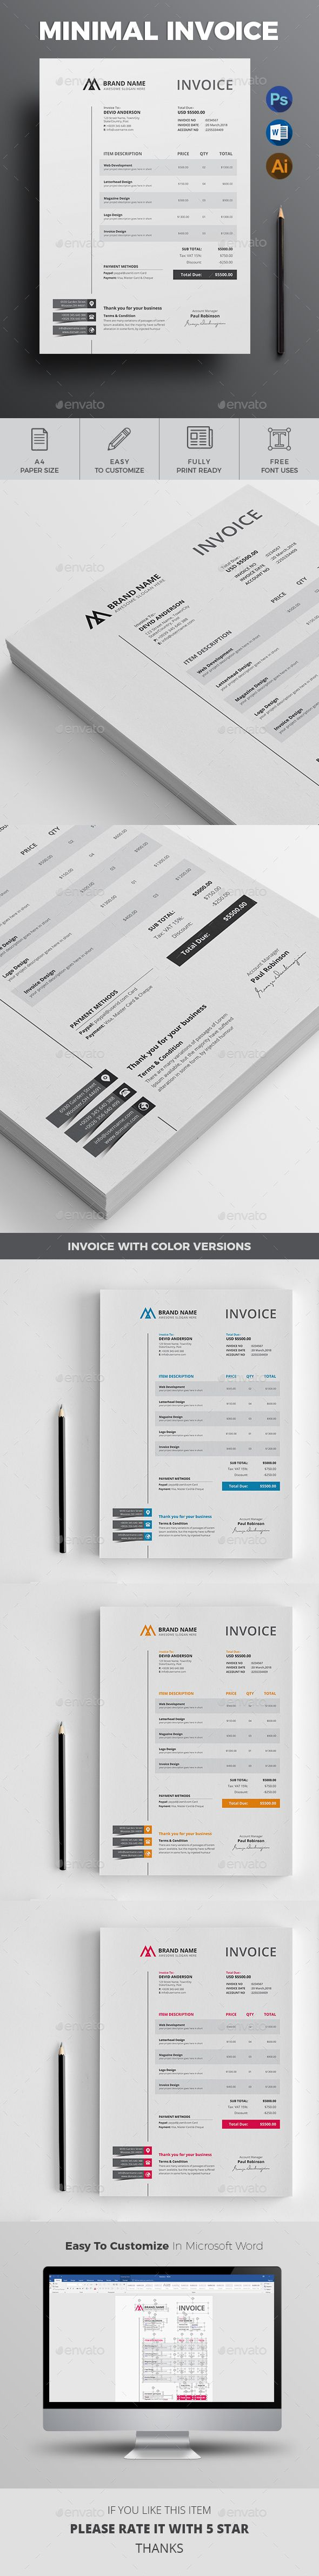 how to create a proposal template in word%0A  Invoice  Proposals  u     Invoices  Stationery